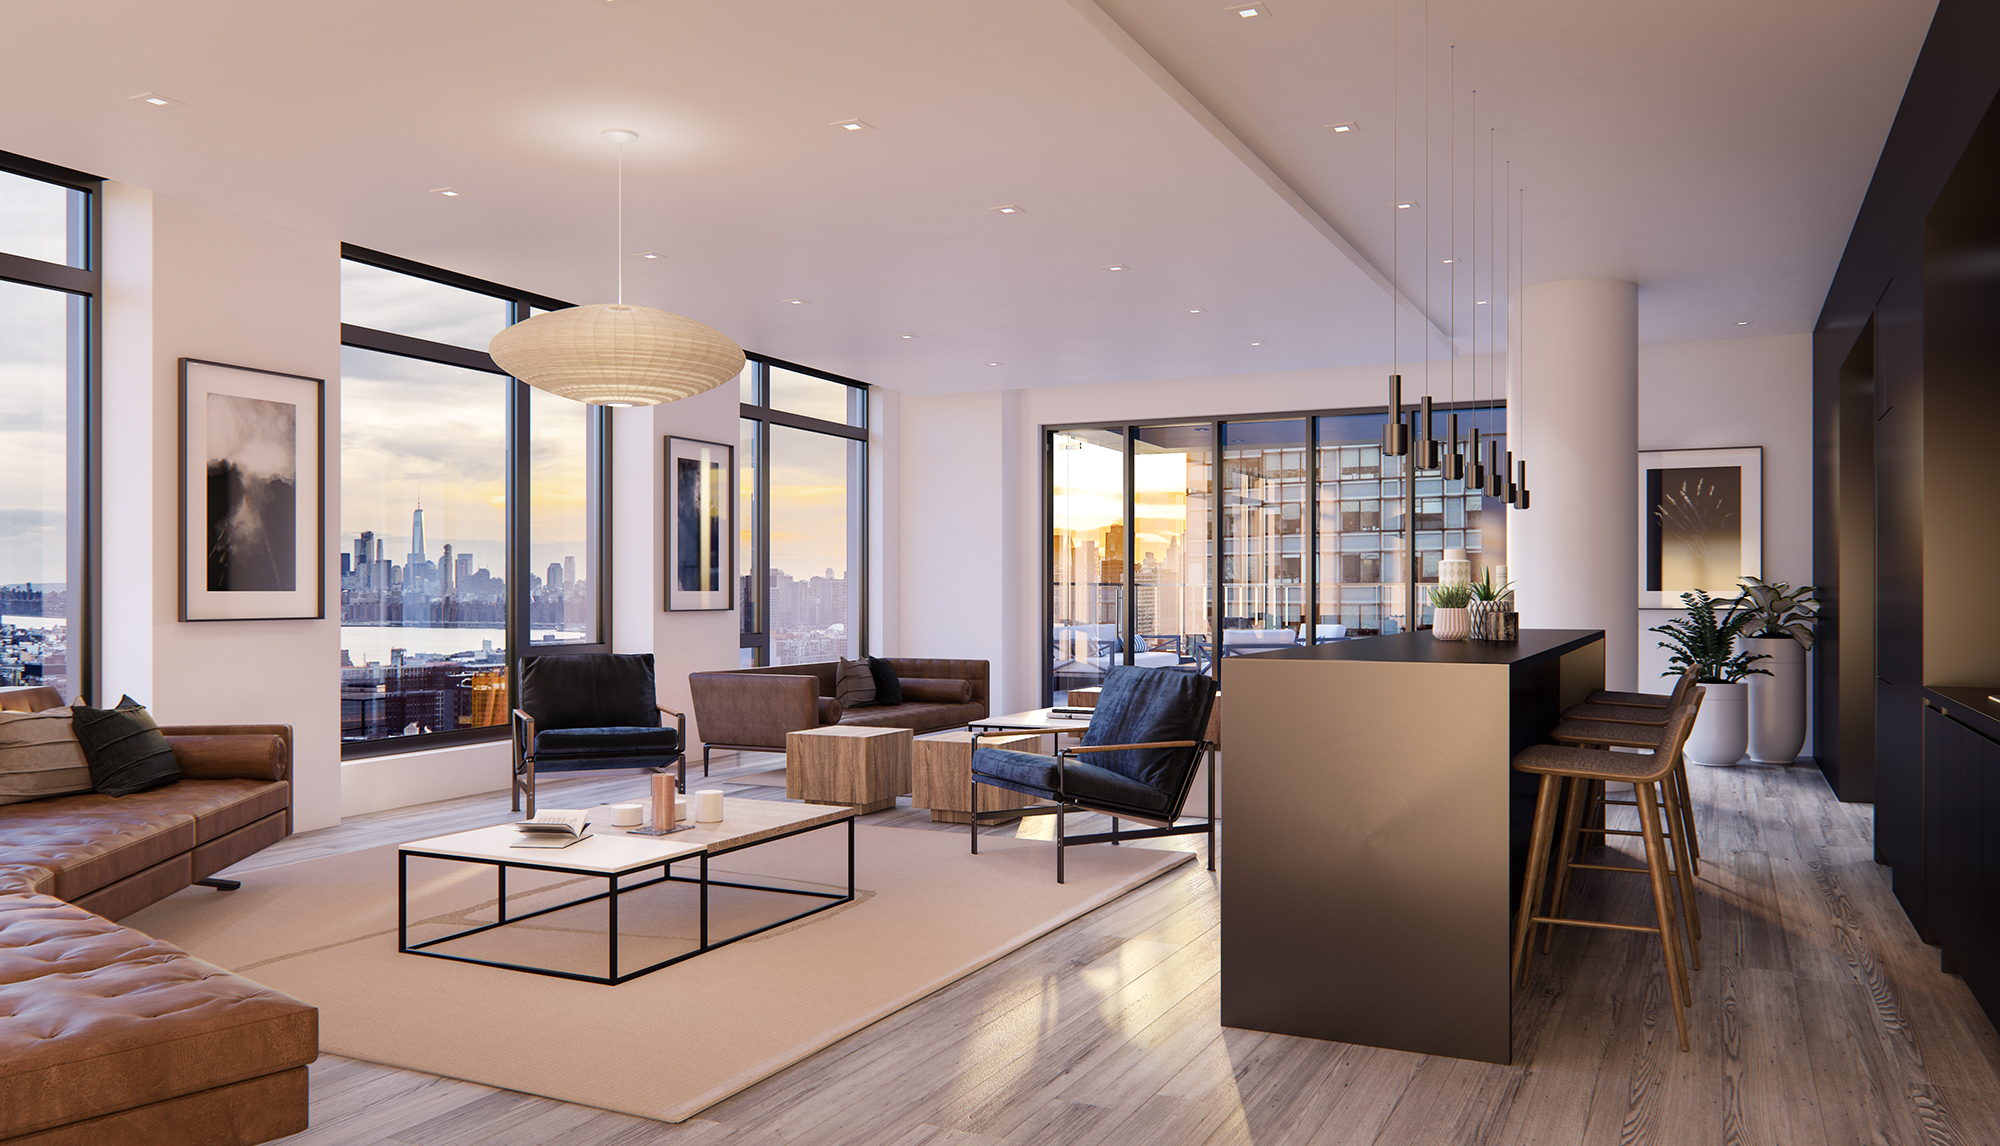 Watermark LIC Adds 168 More Apartments To Rental Heavy Long Island City